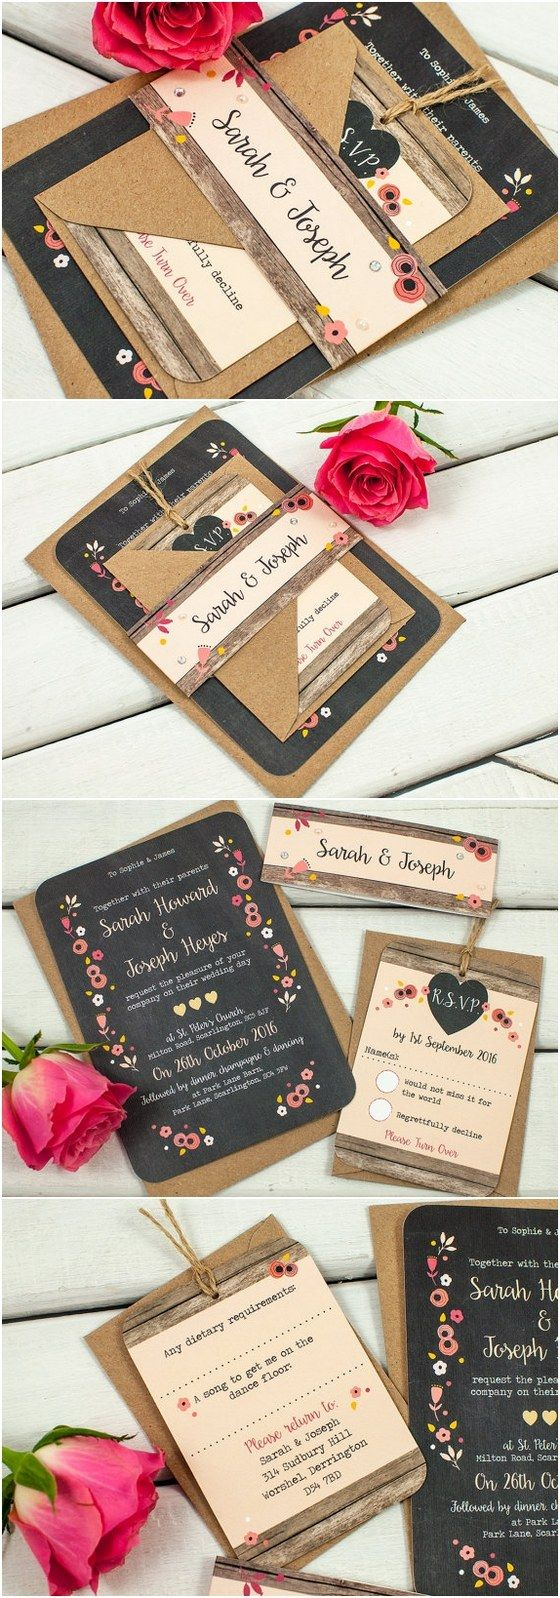 Berry Floral Chalkboard wedding invitation bundle - Fall Autumn Wedding